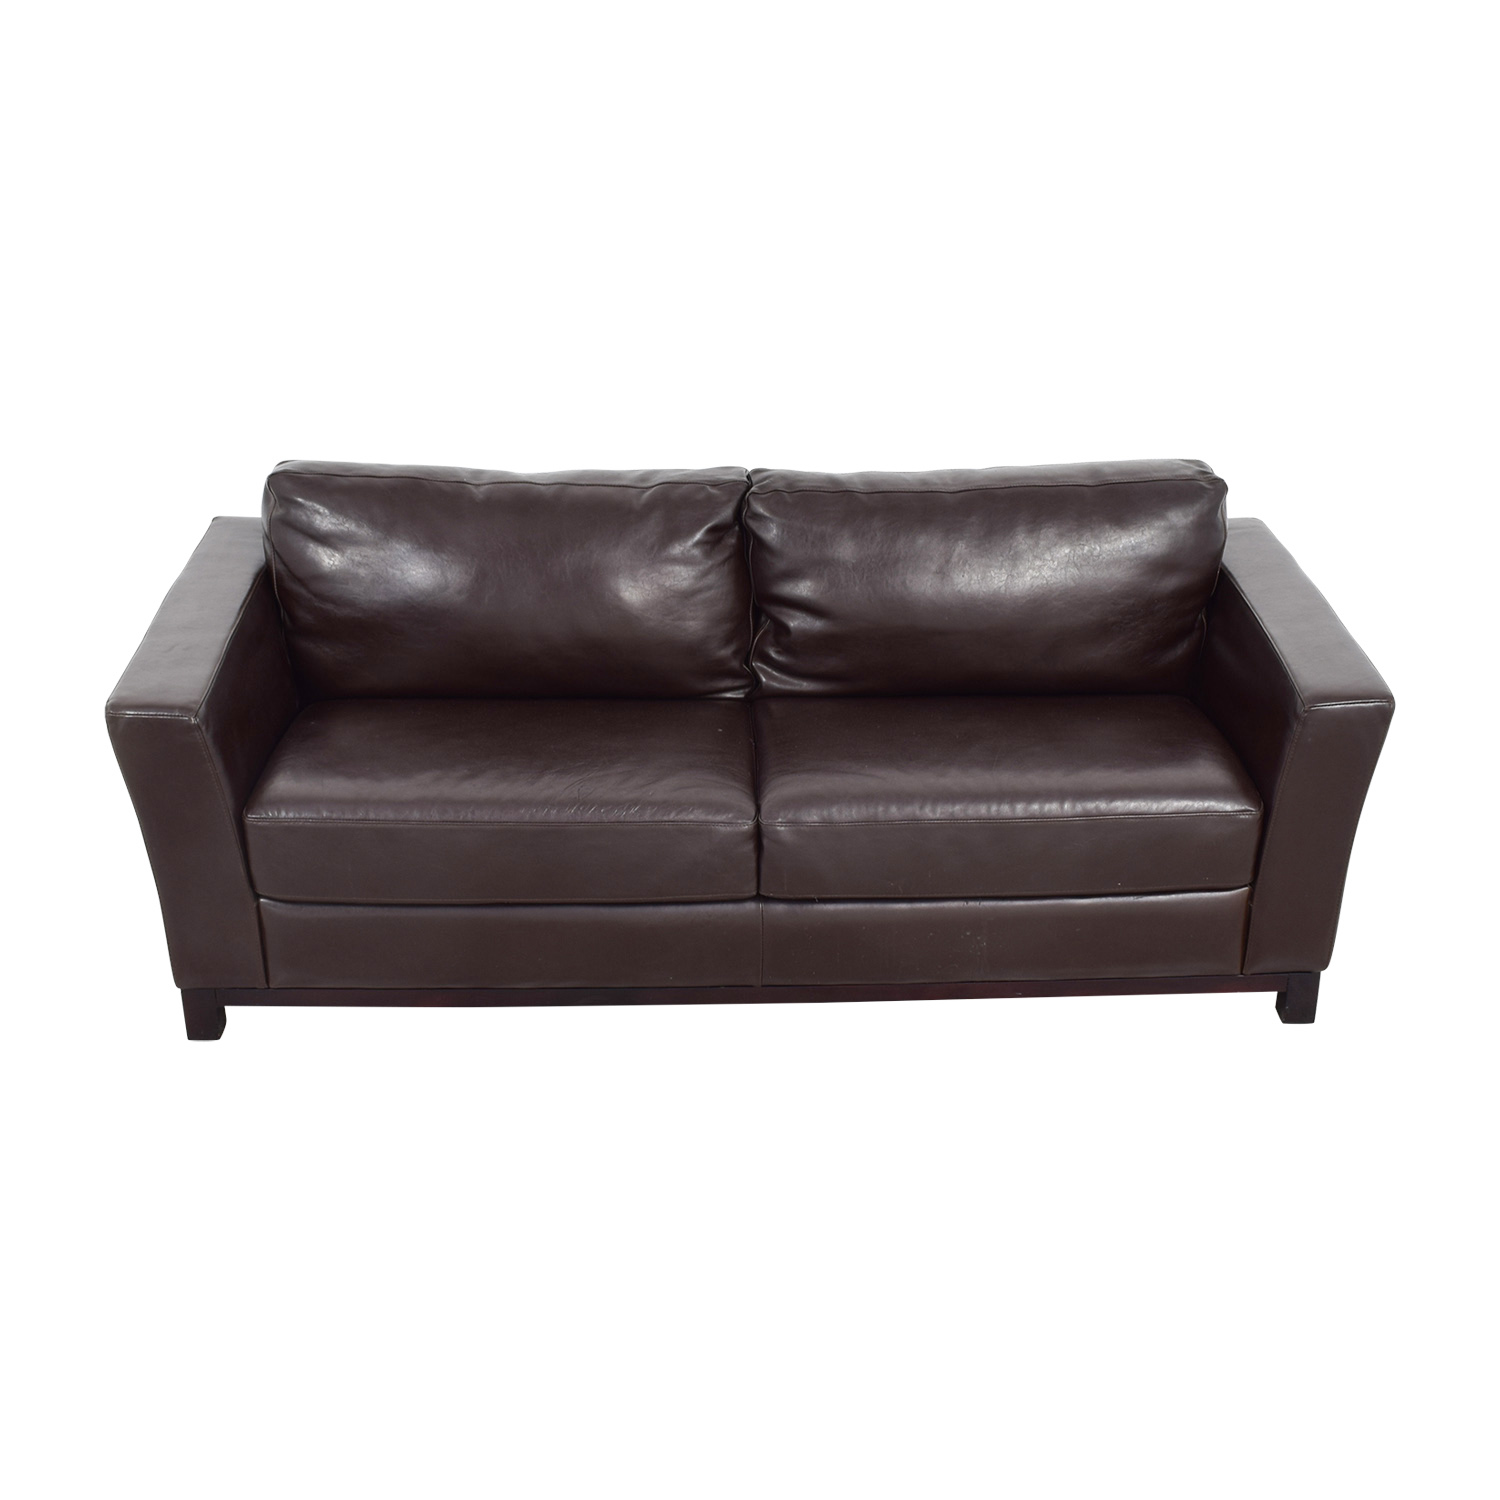 Used sofas online used furniture for wplace design thesofa for Used leather sofa set